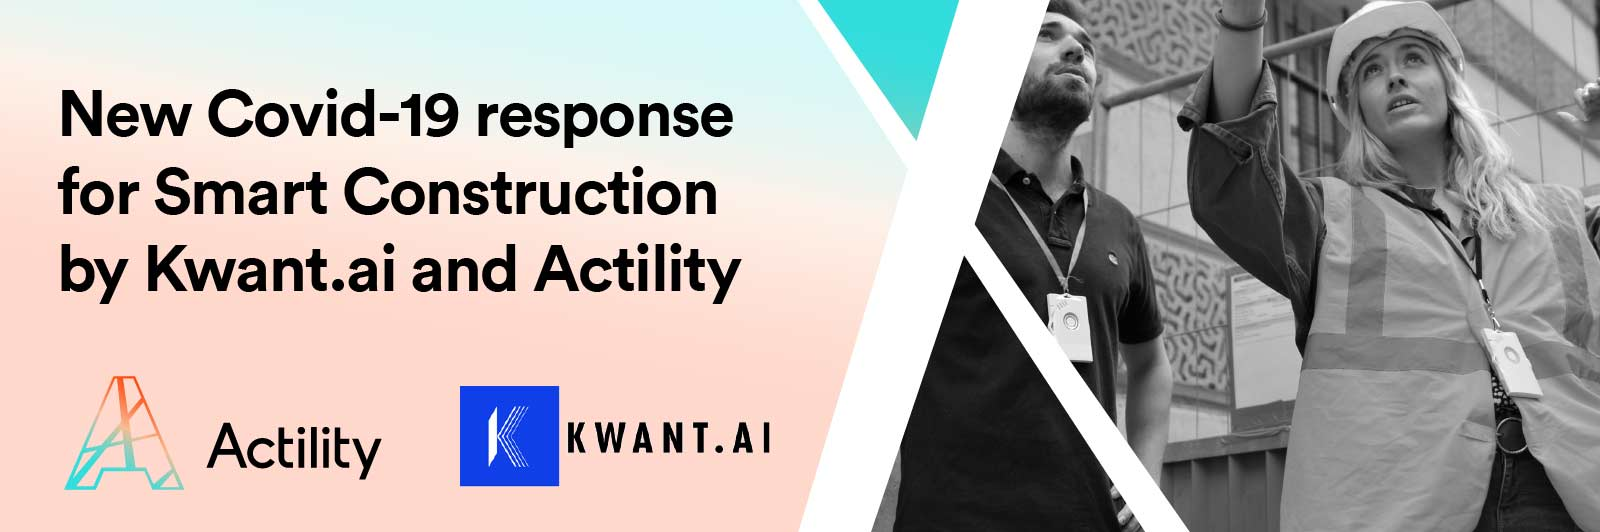 Kwant.ai press release image with workers wearing Abeeway smart badges